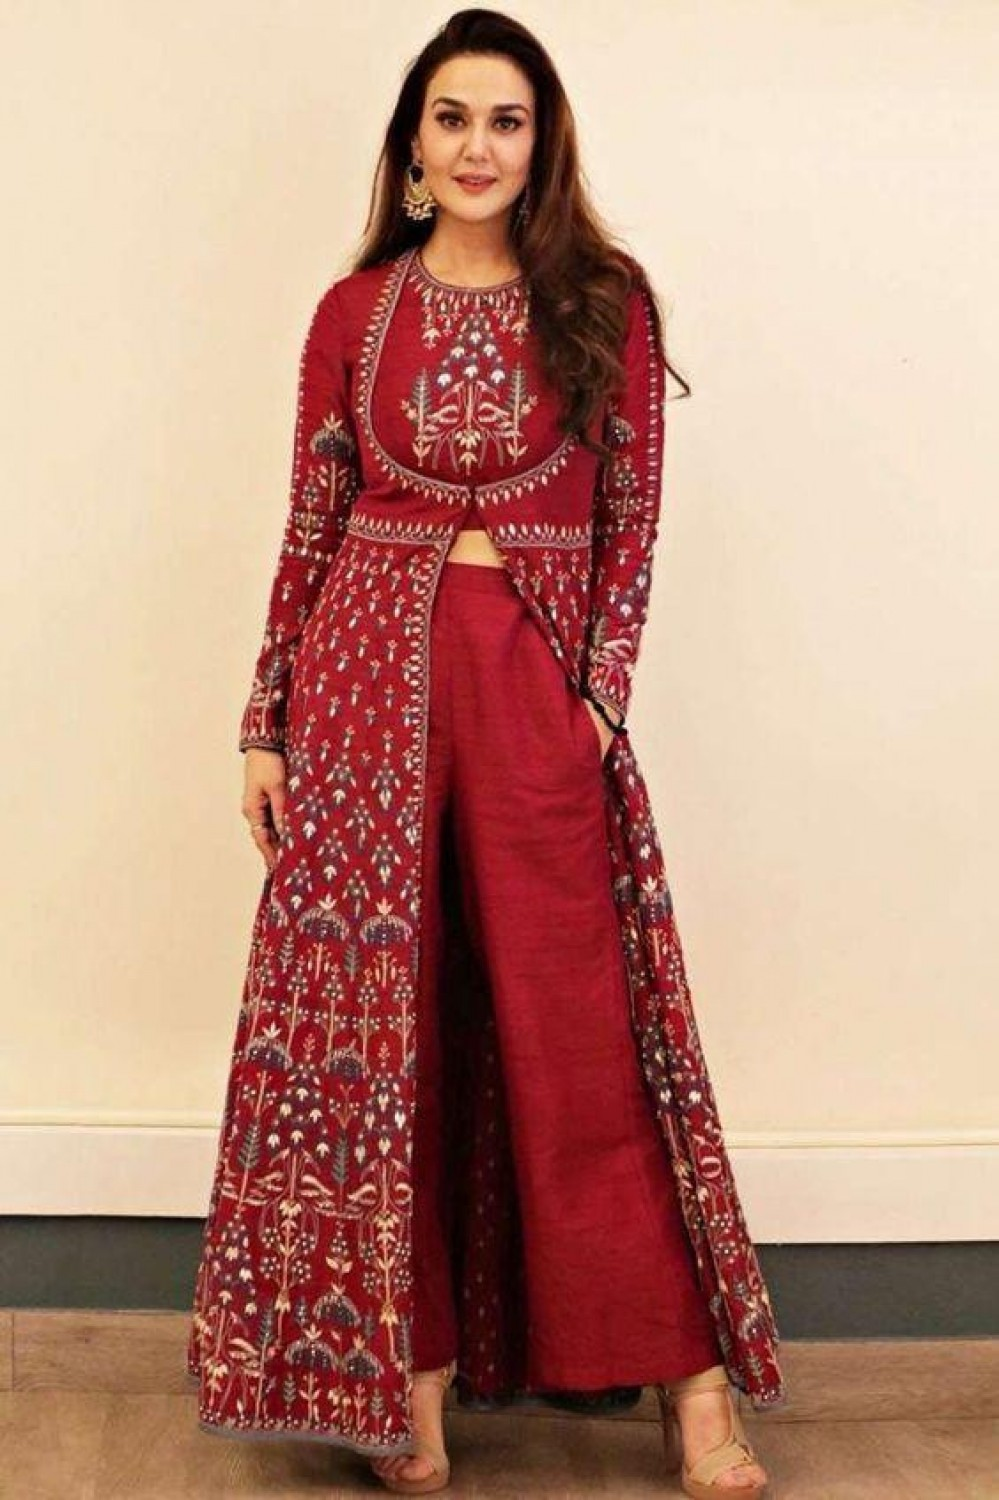 Intricate priti zinta ly red Suit